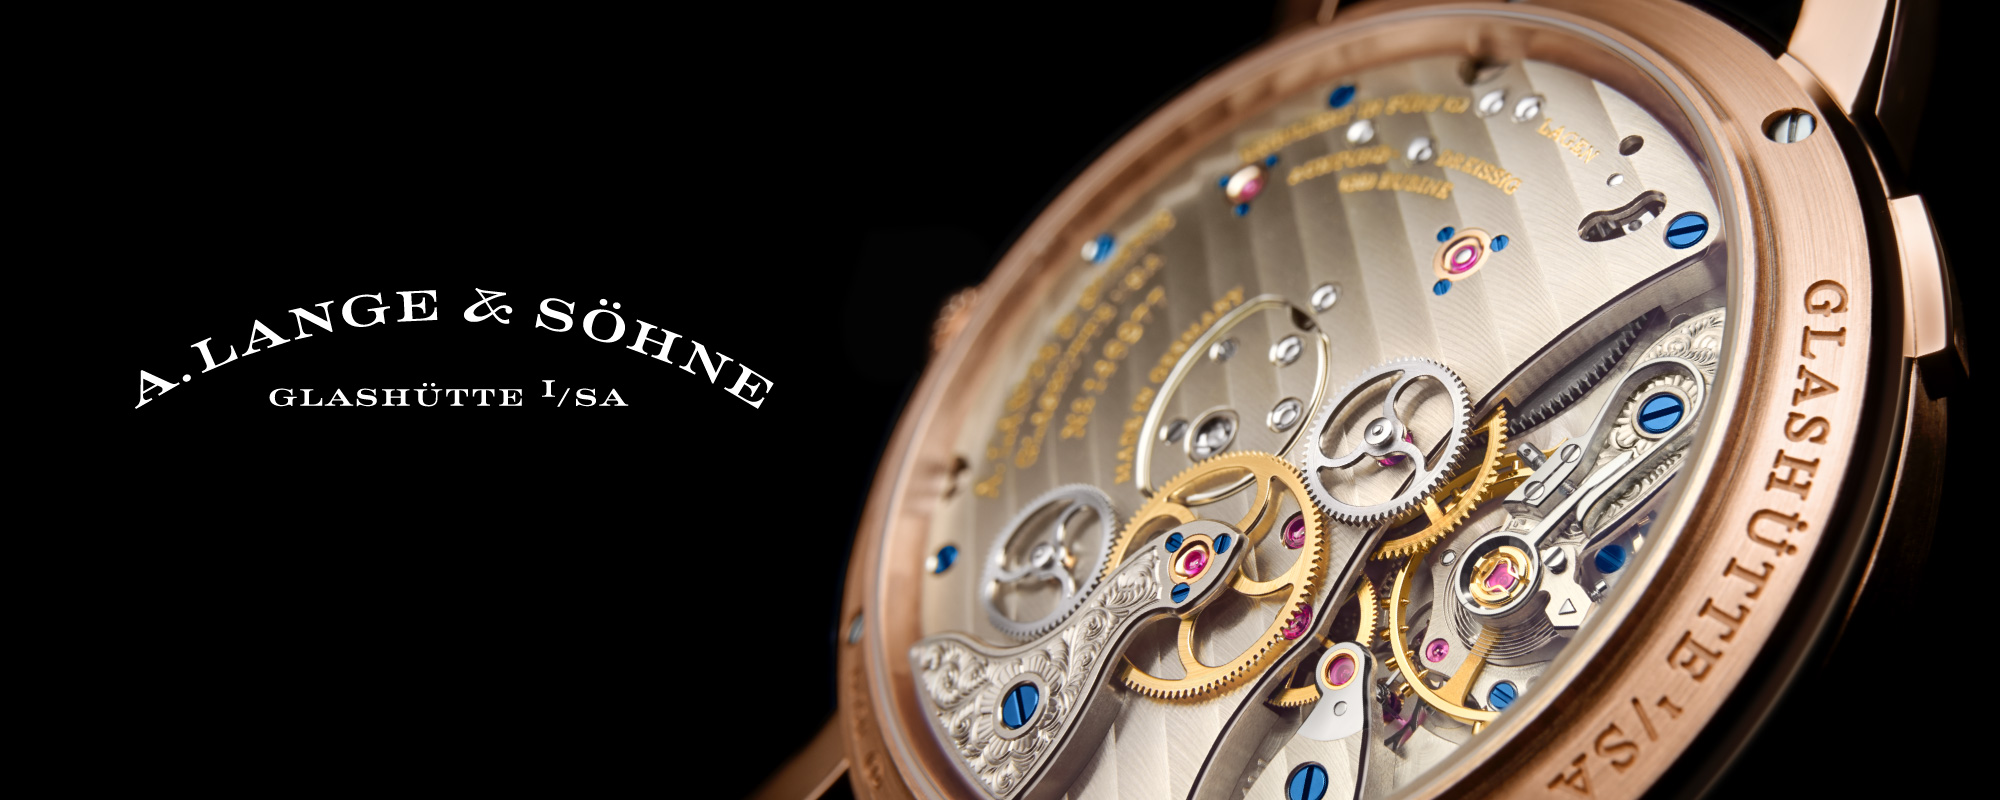 A. Lange & Söhne Watches